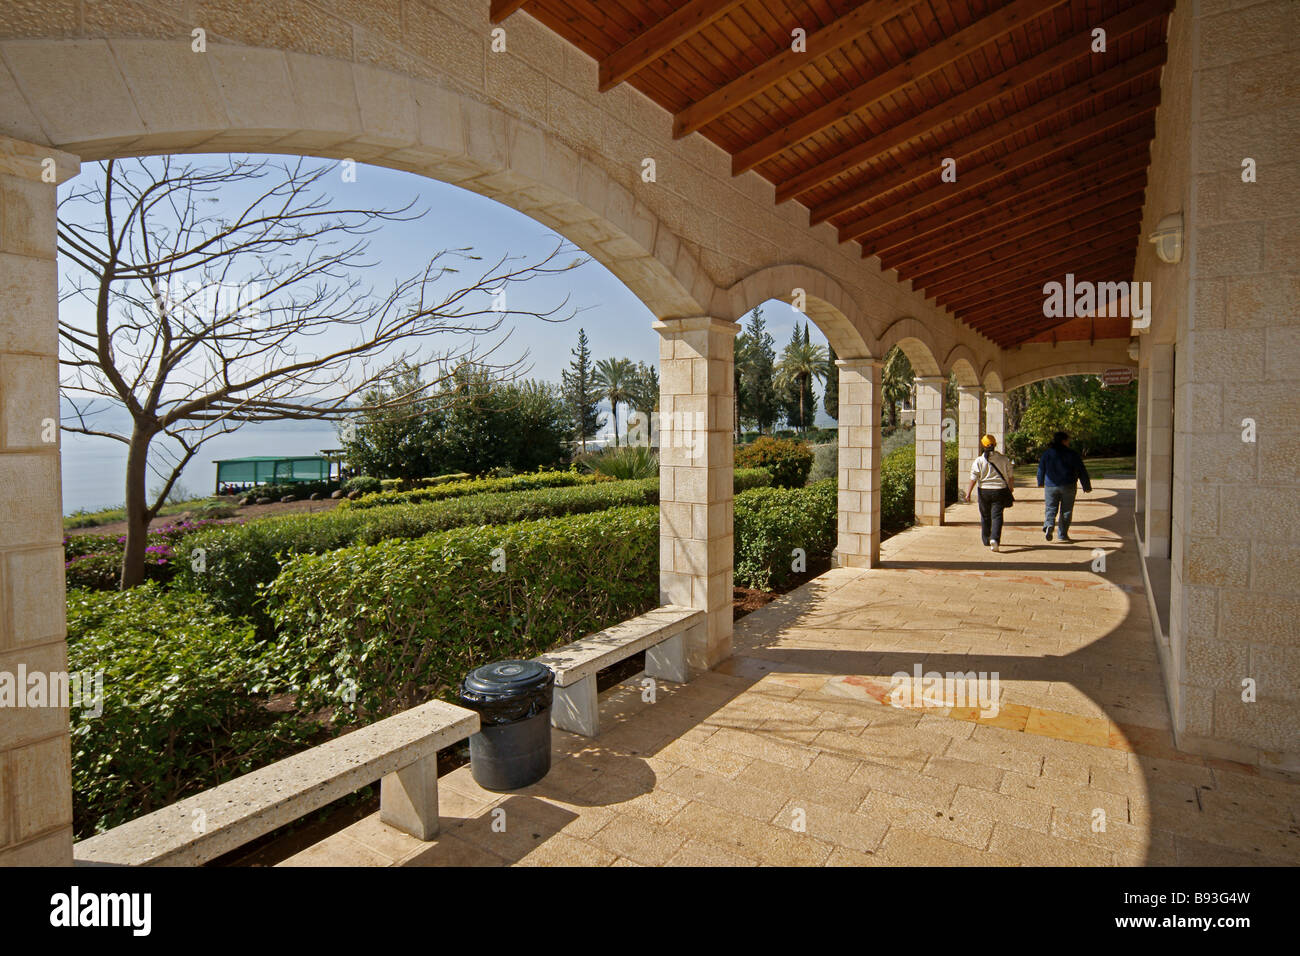 Israel Galilee Church of the Beatitudes on the northern coast of the Sea of Galilee in Israel Stock Photo